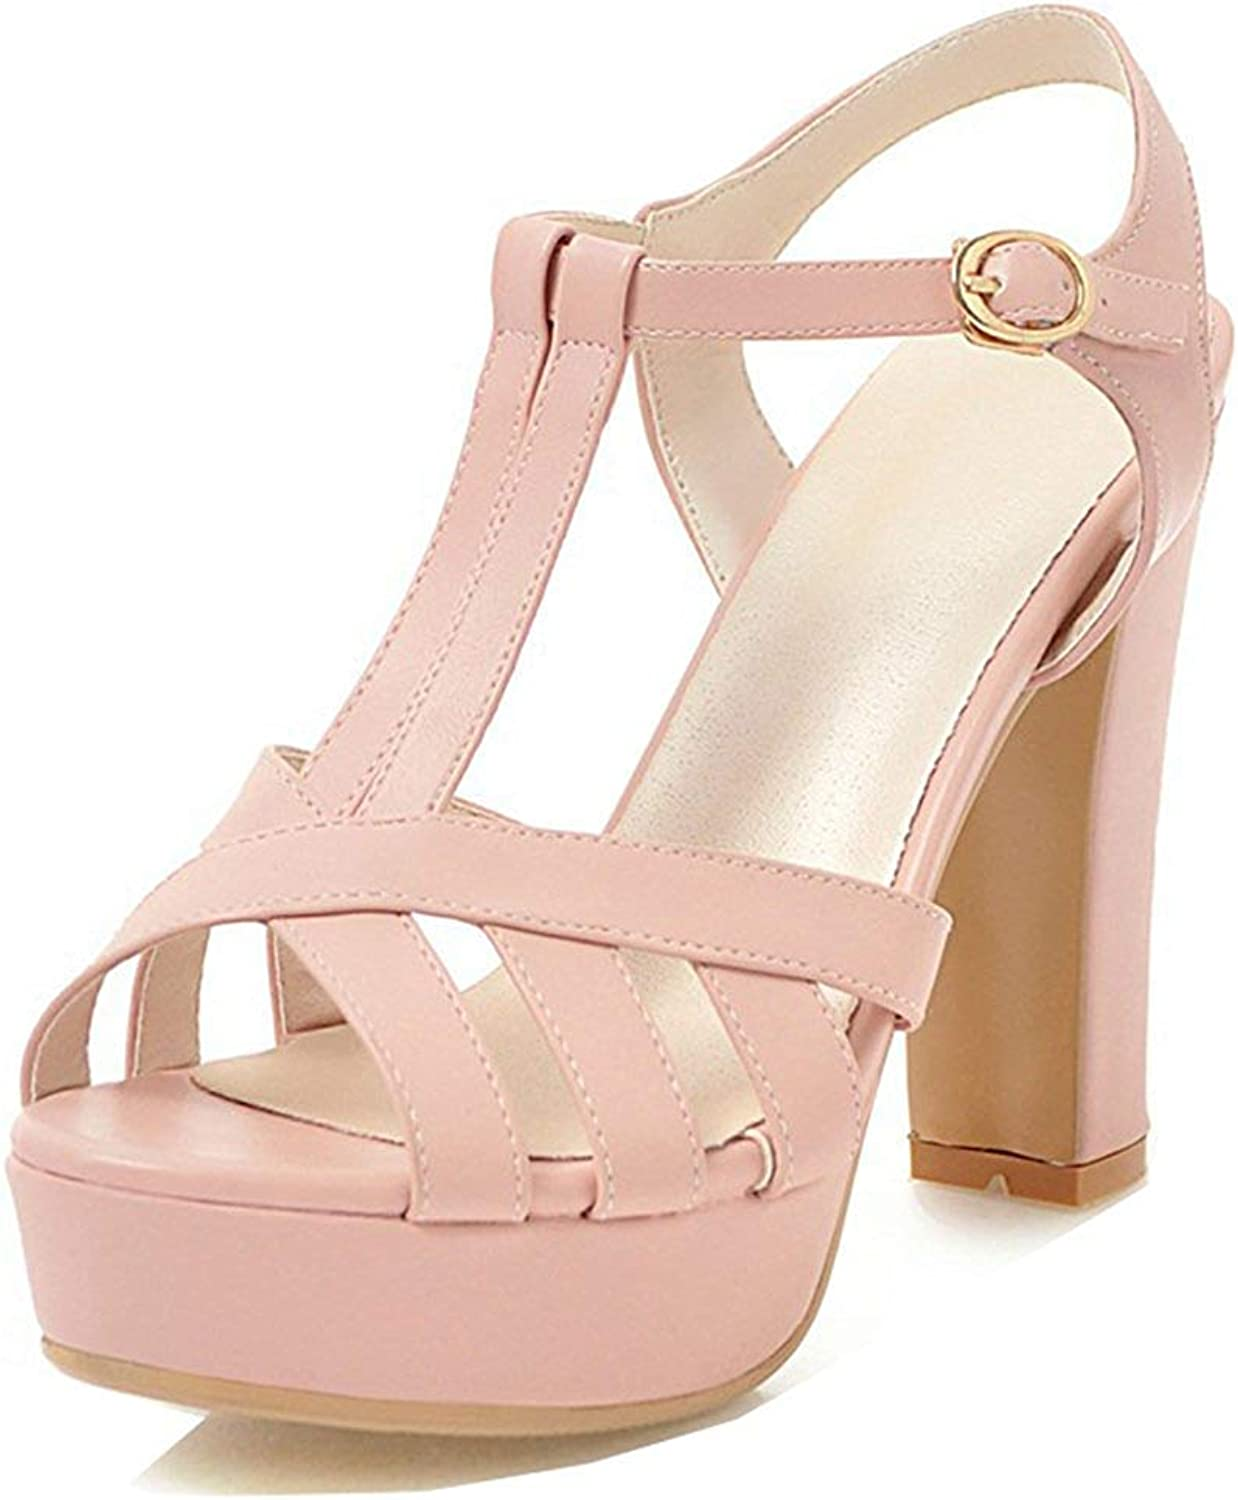 Unm Women's Platform Sandals with Ankle Strap - Cutout Peep Toe Chunky - T Strap Buckled High Heels